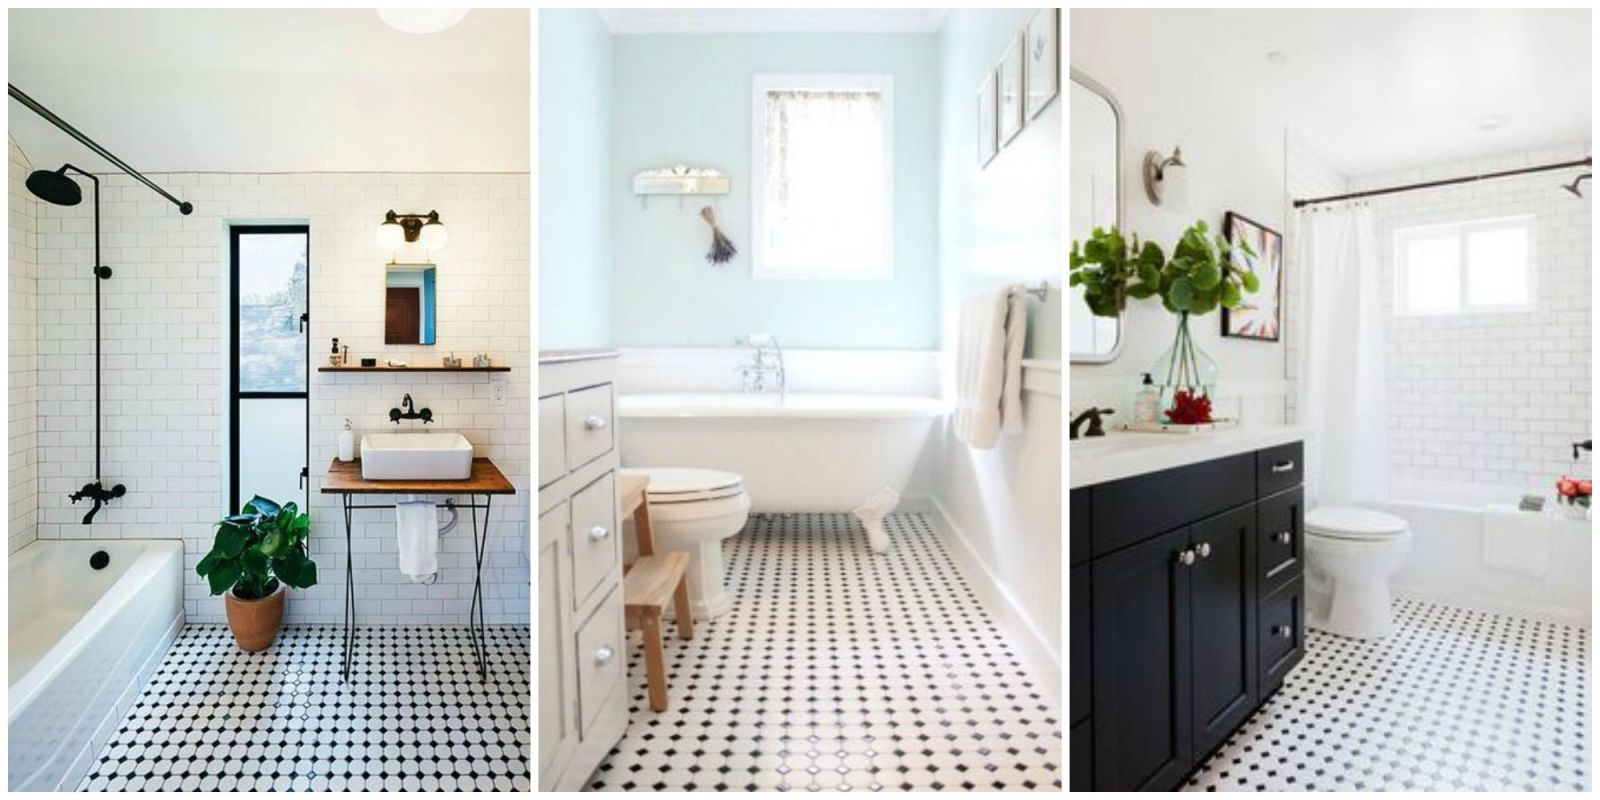 When It Comes To Classic Design Ideas, Black And White Tile Is Kingu2014while  It Can Fade In Popularity, It Never Really Goes Out Of Style.